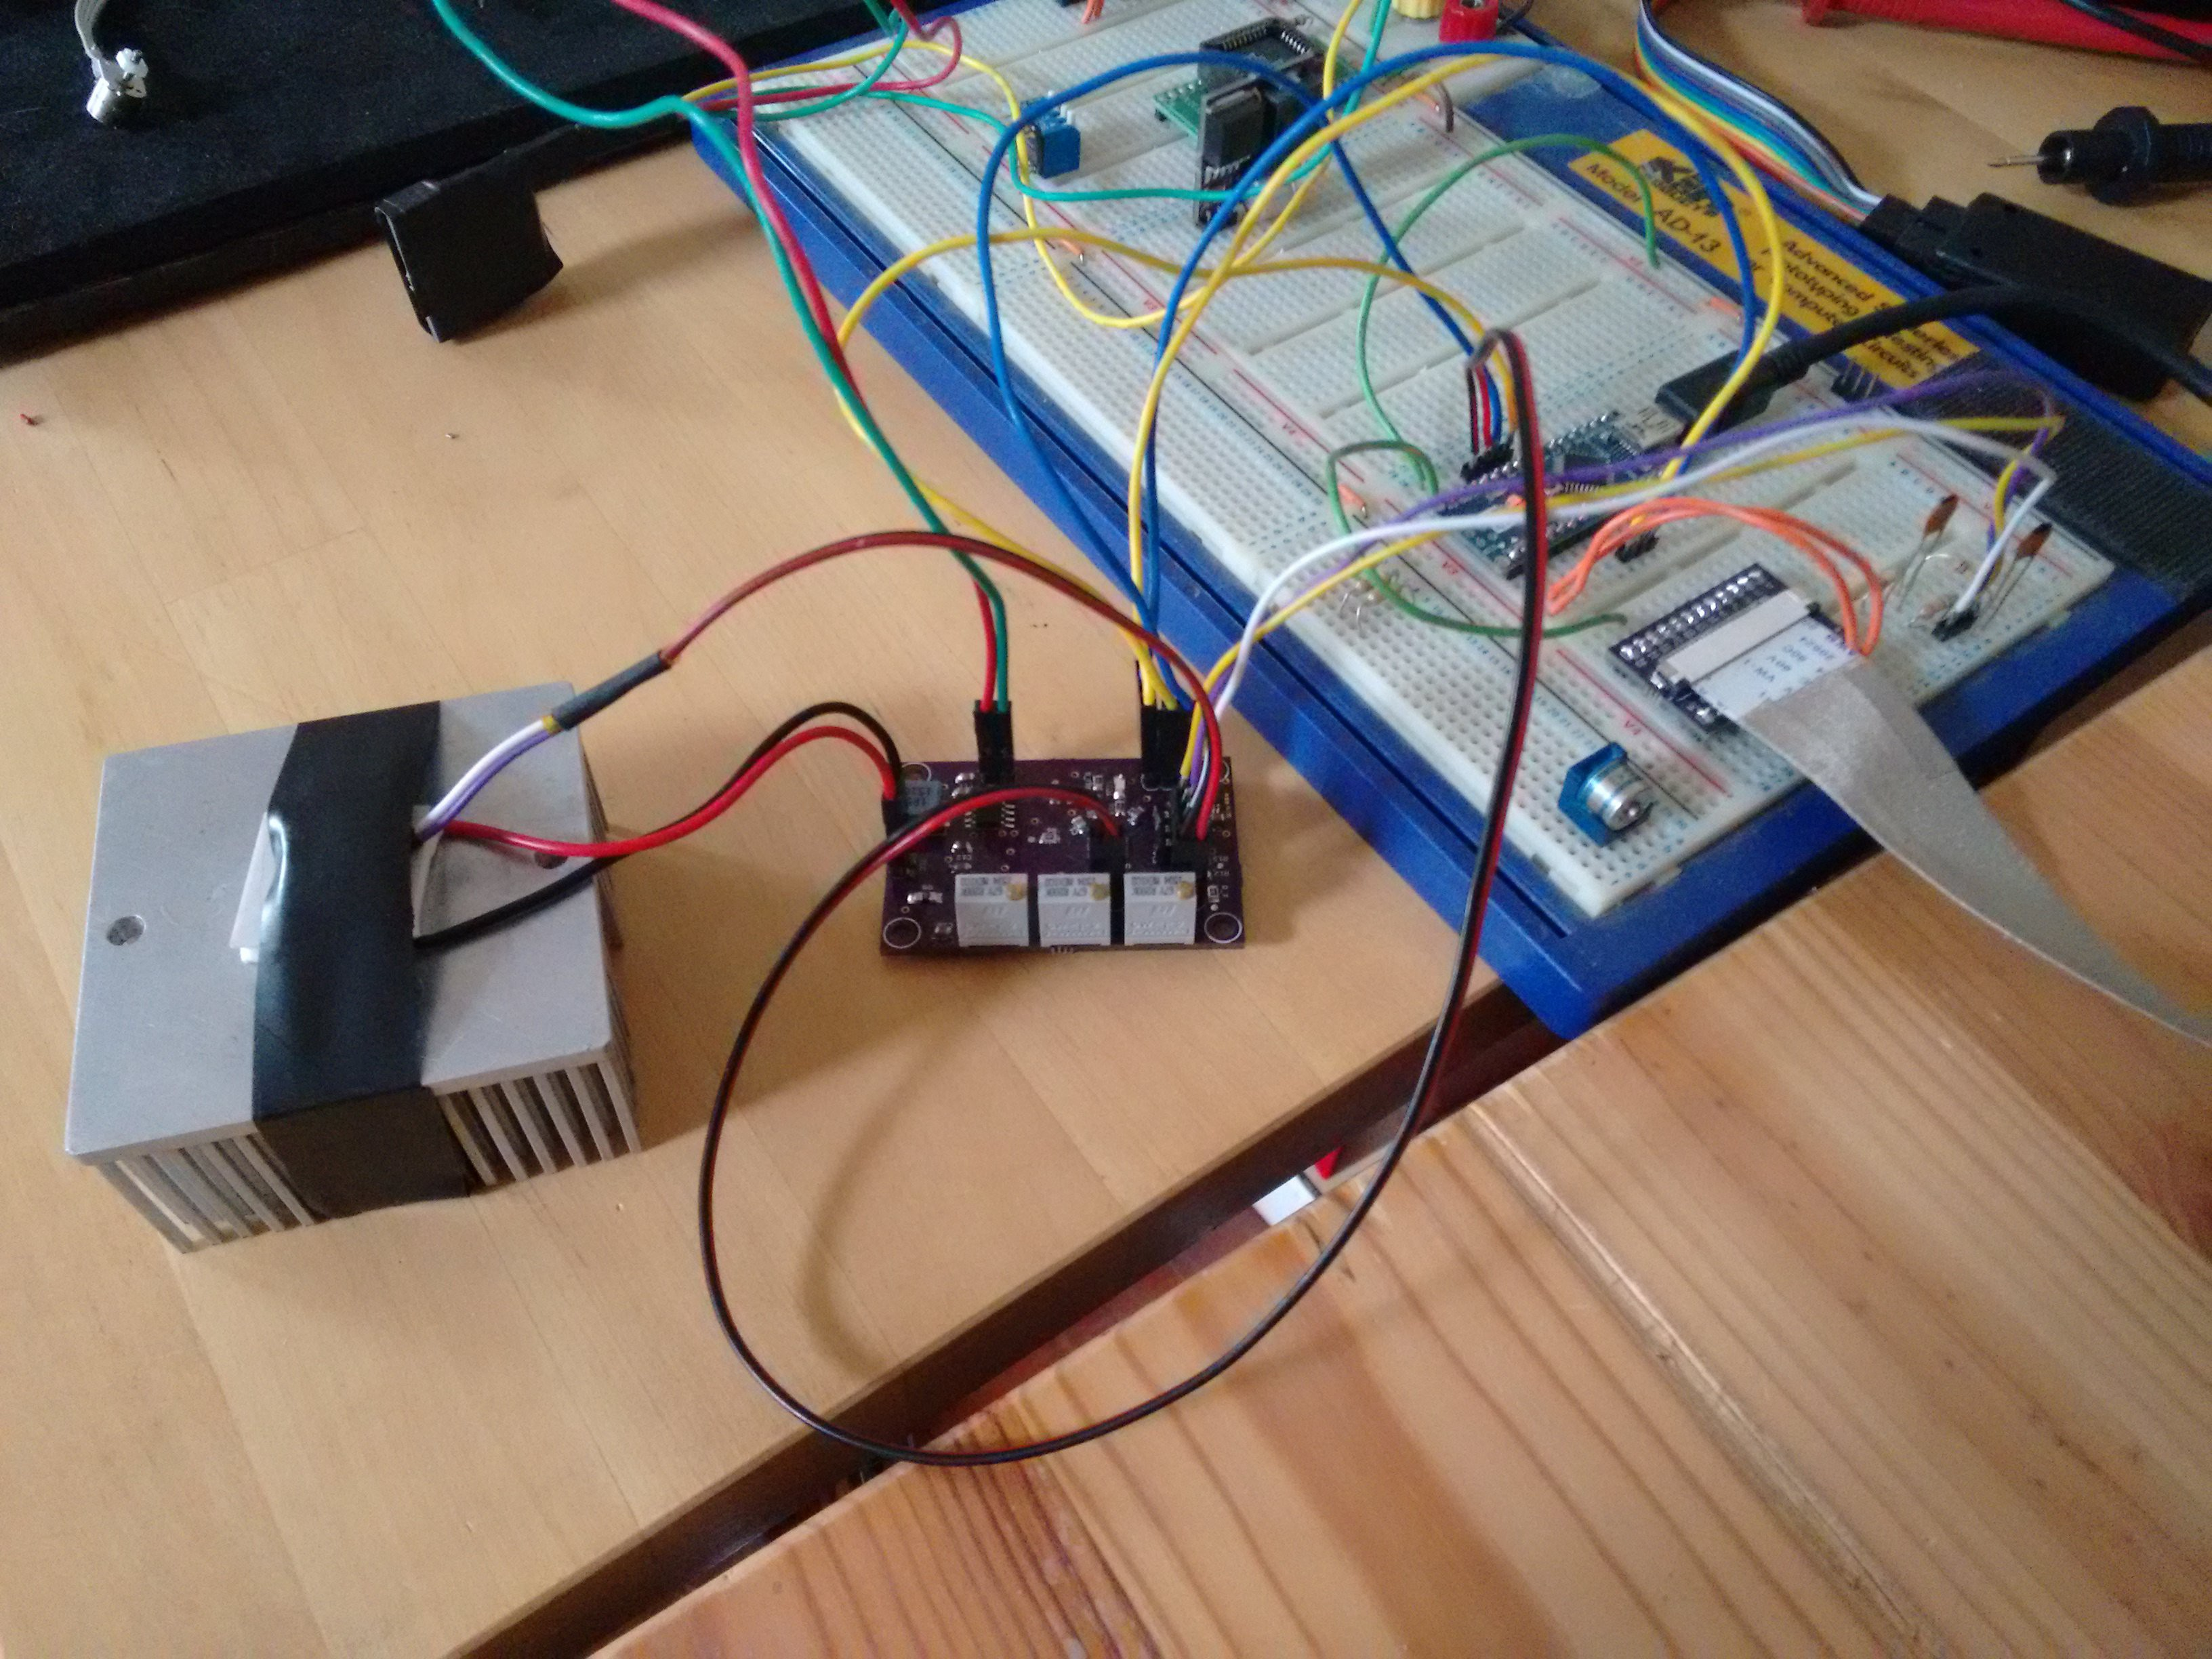 project logs bull ic tec controller bull io test setup tec thermistor and heat sink plus connections to arduino for control and monitoring of current and voltage signals